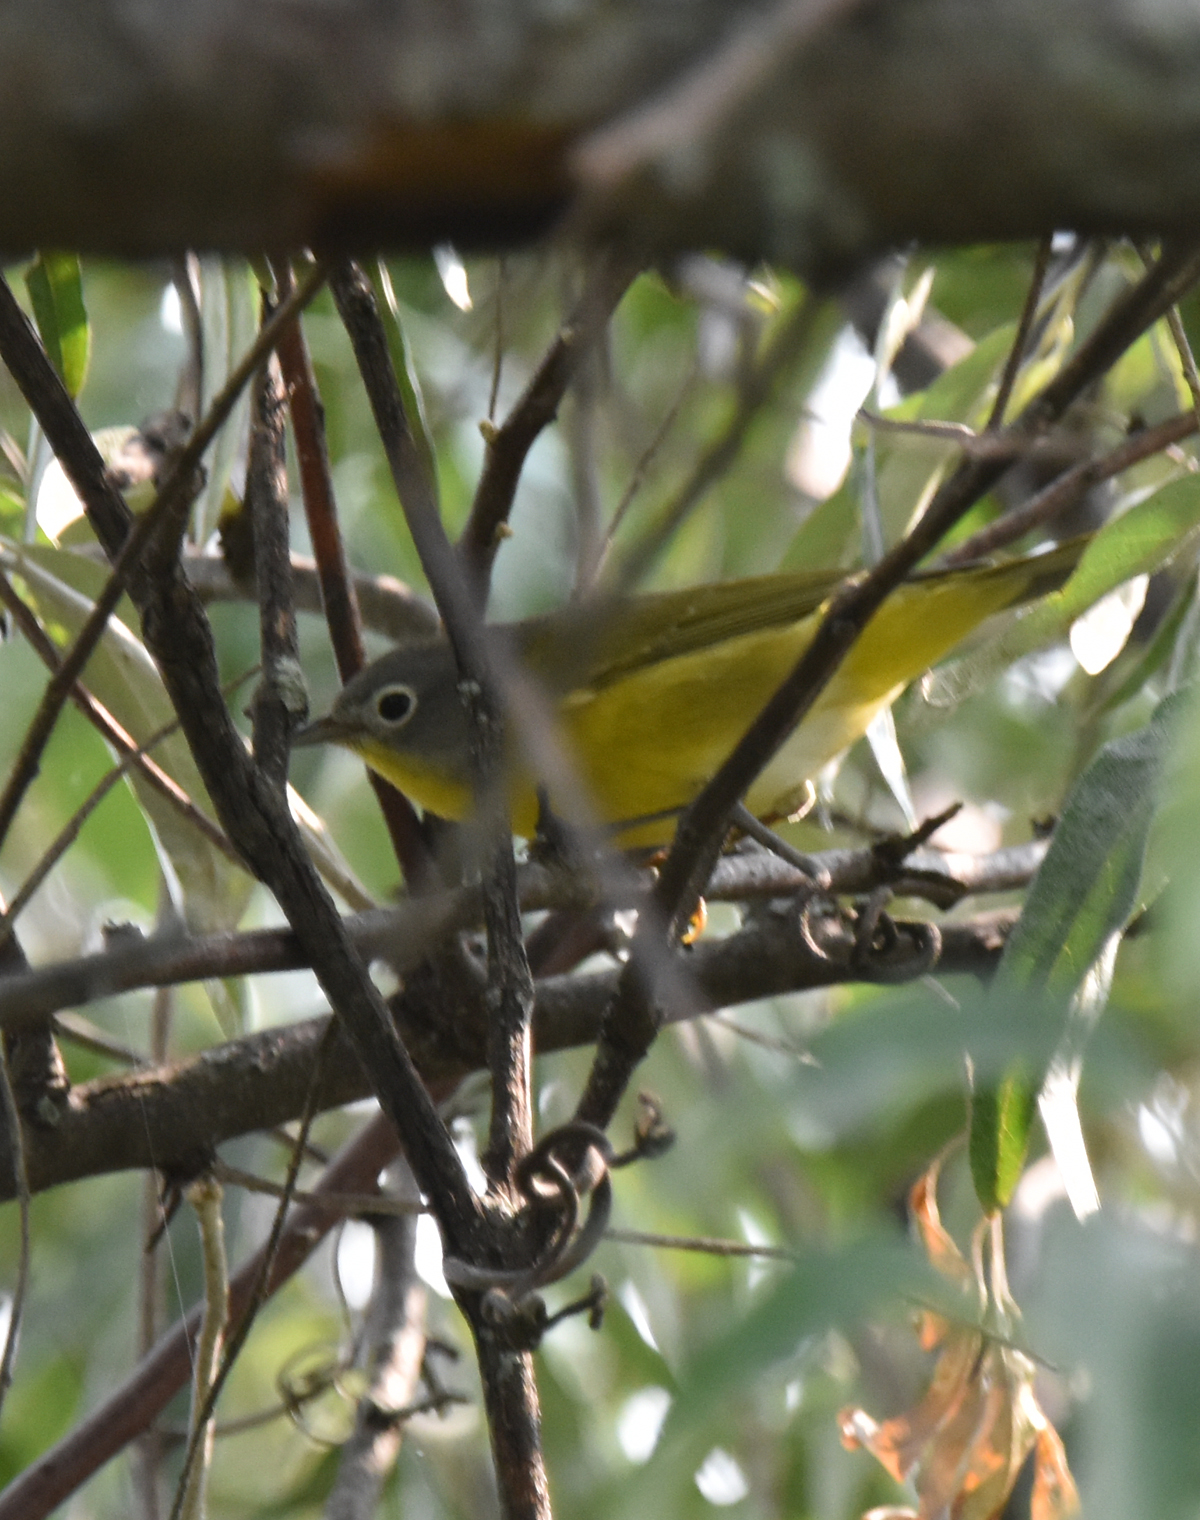 Photo of Nashville Warbler Urquhart on NaturalCrooksDotCom